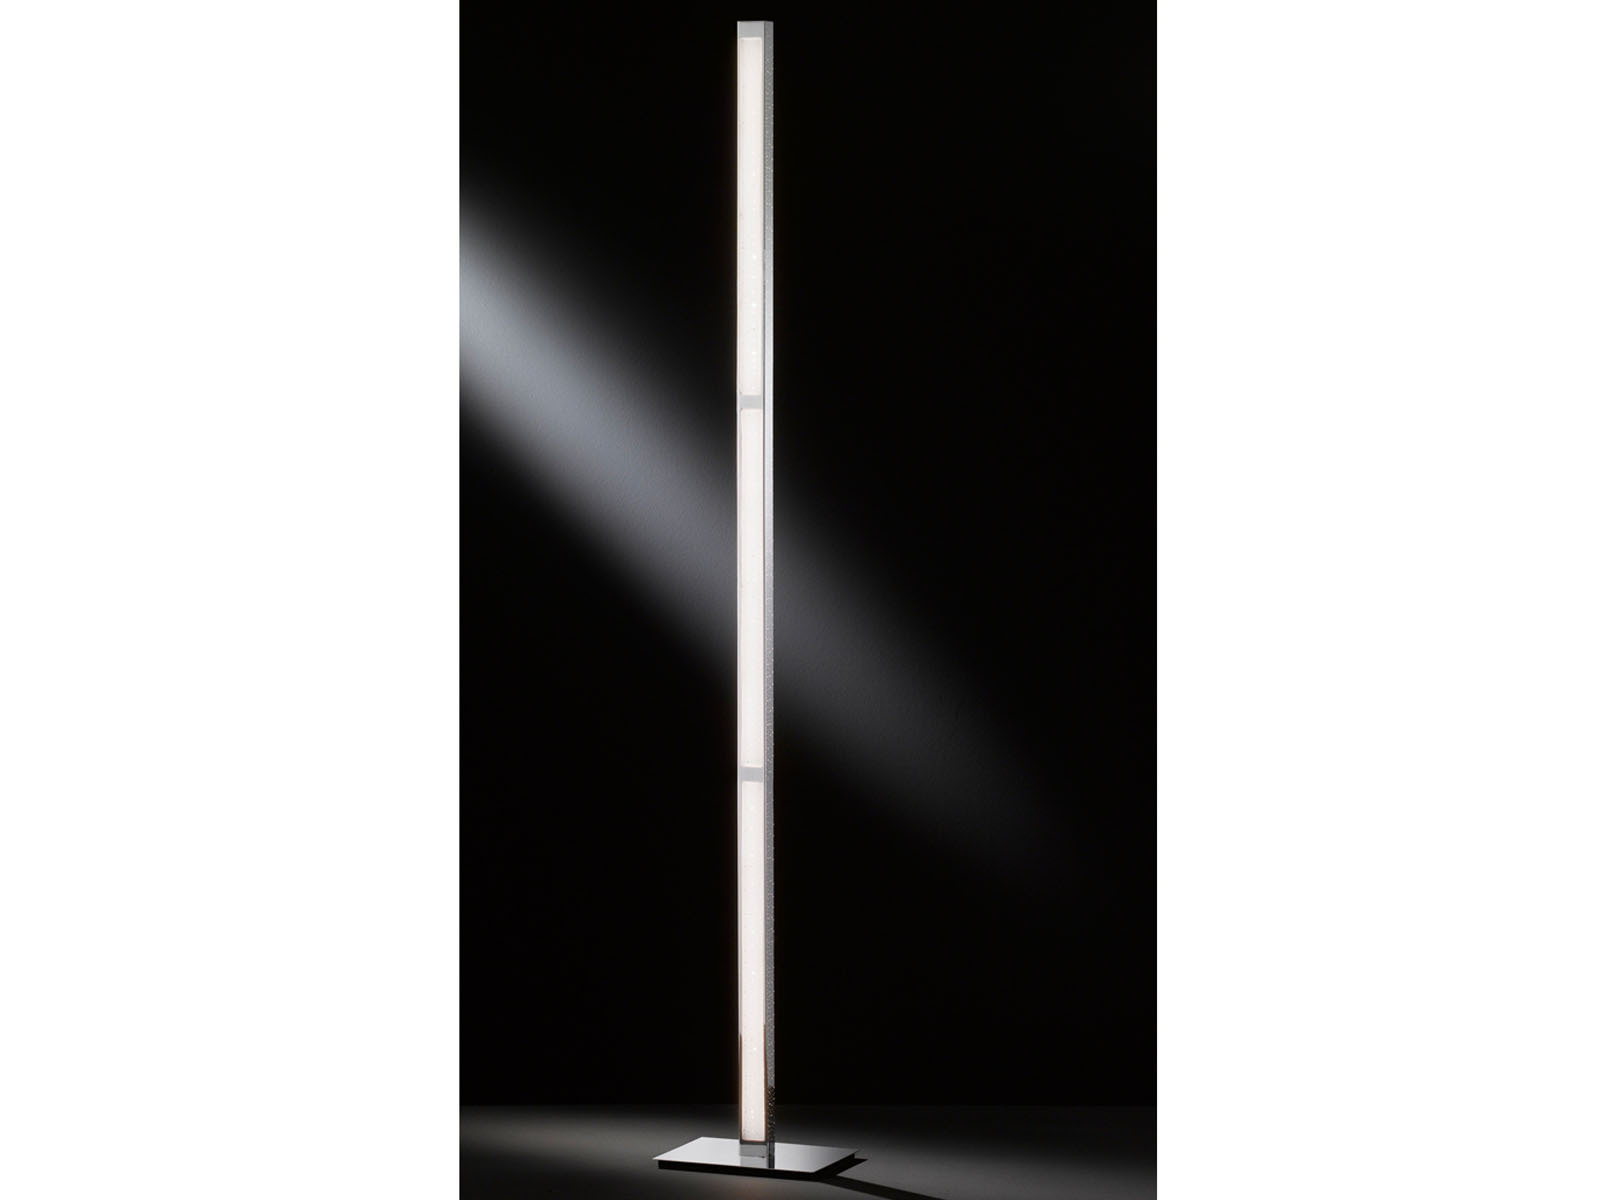 Dimmbare Stehlampe Dimmbare Led Standlampe Höhe 139 5cm Aluminium Chrom Standleuchte